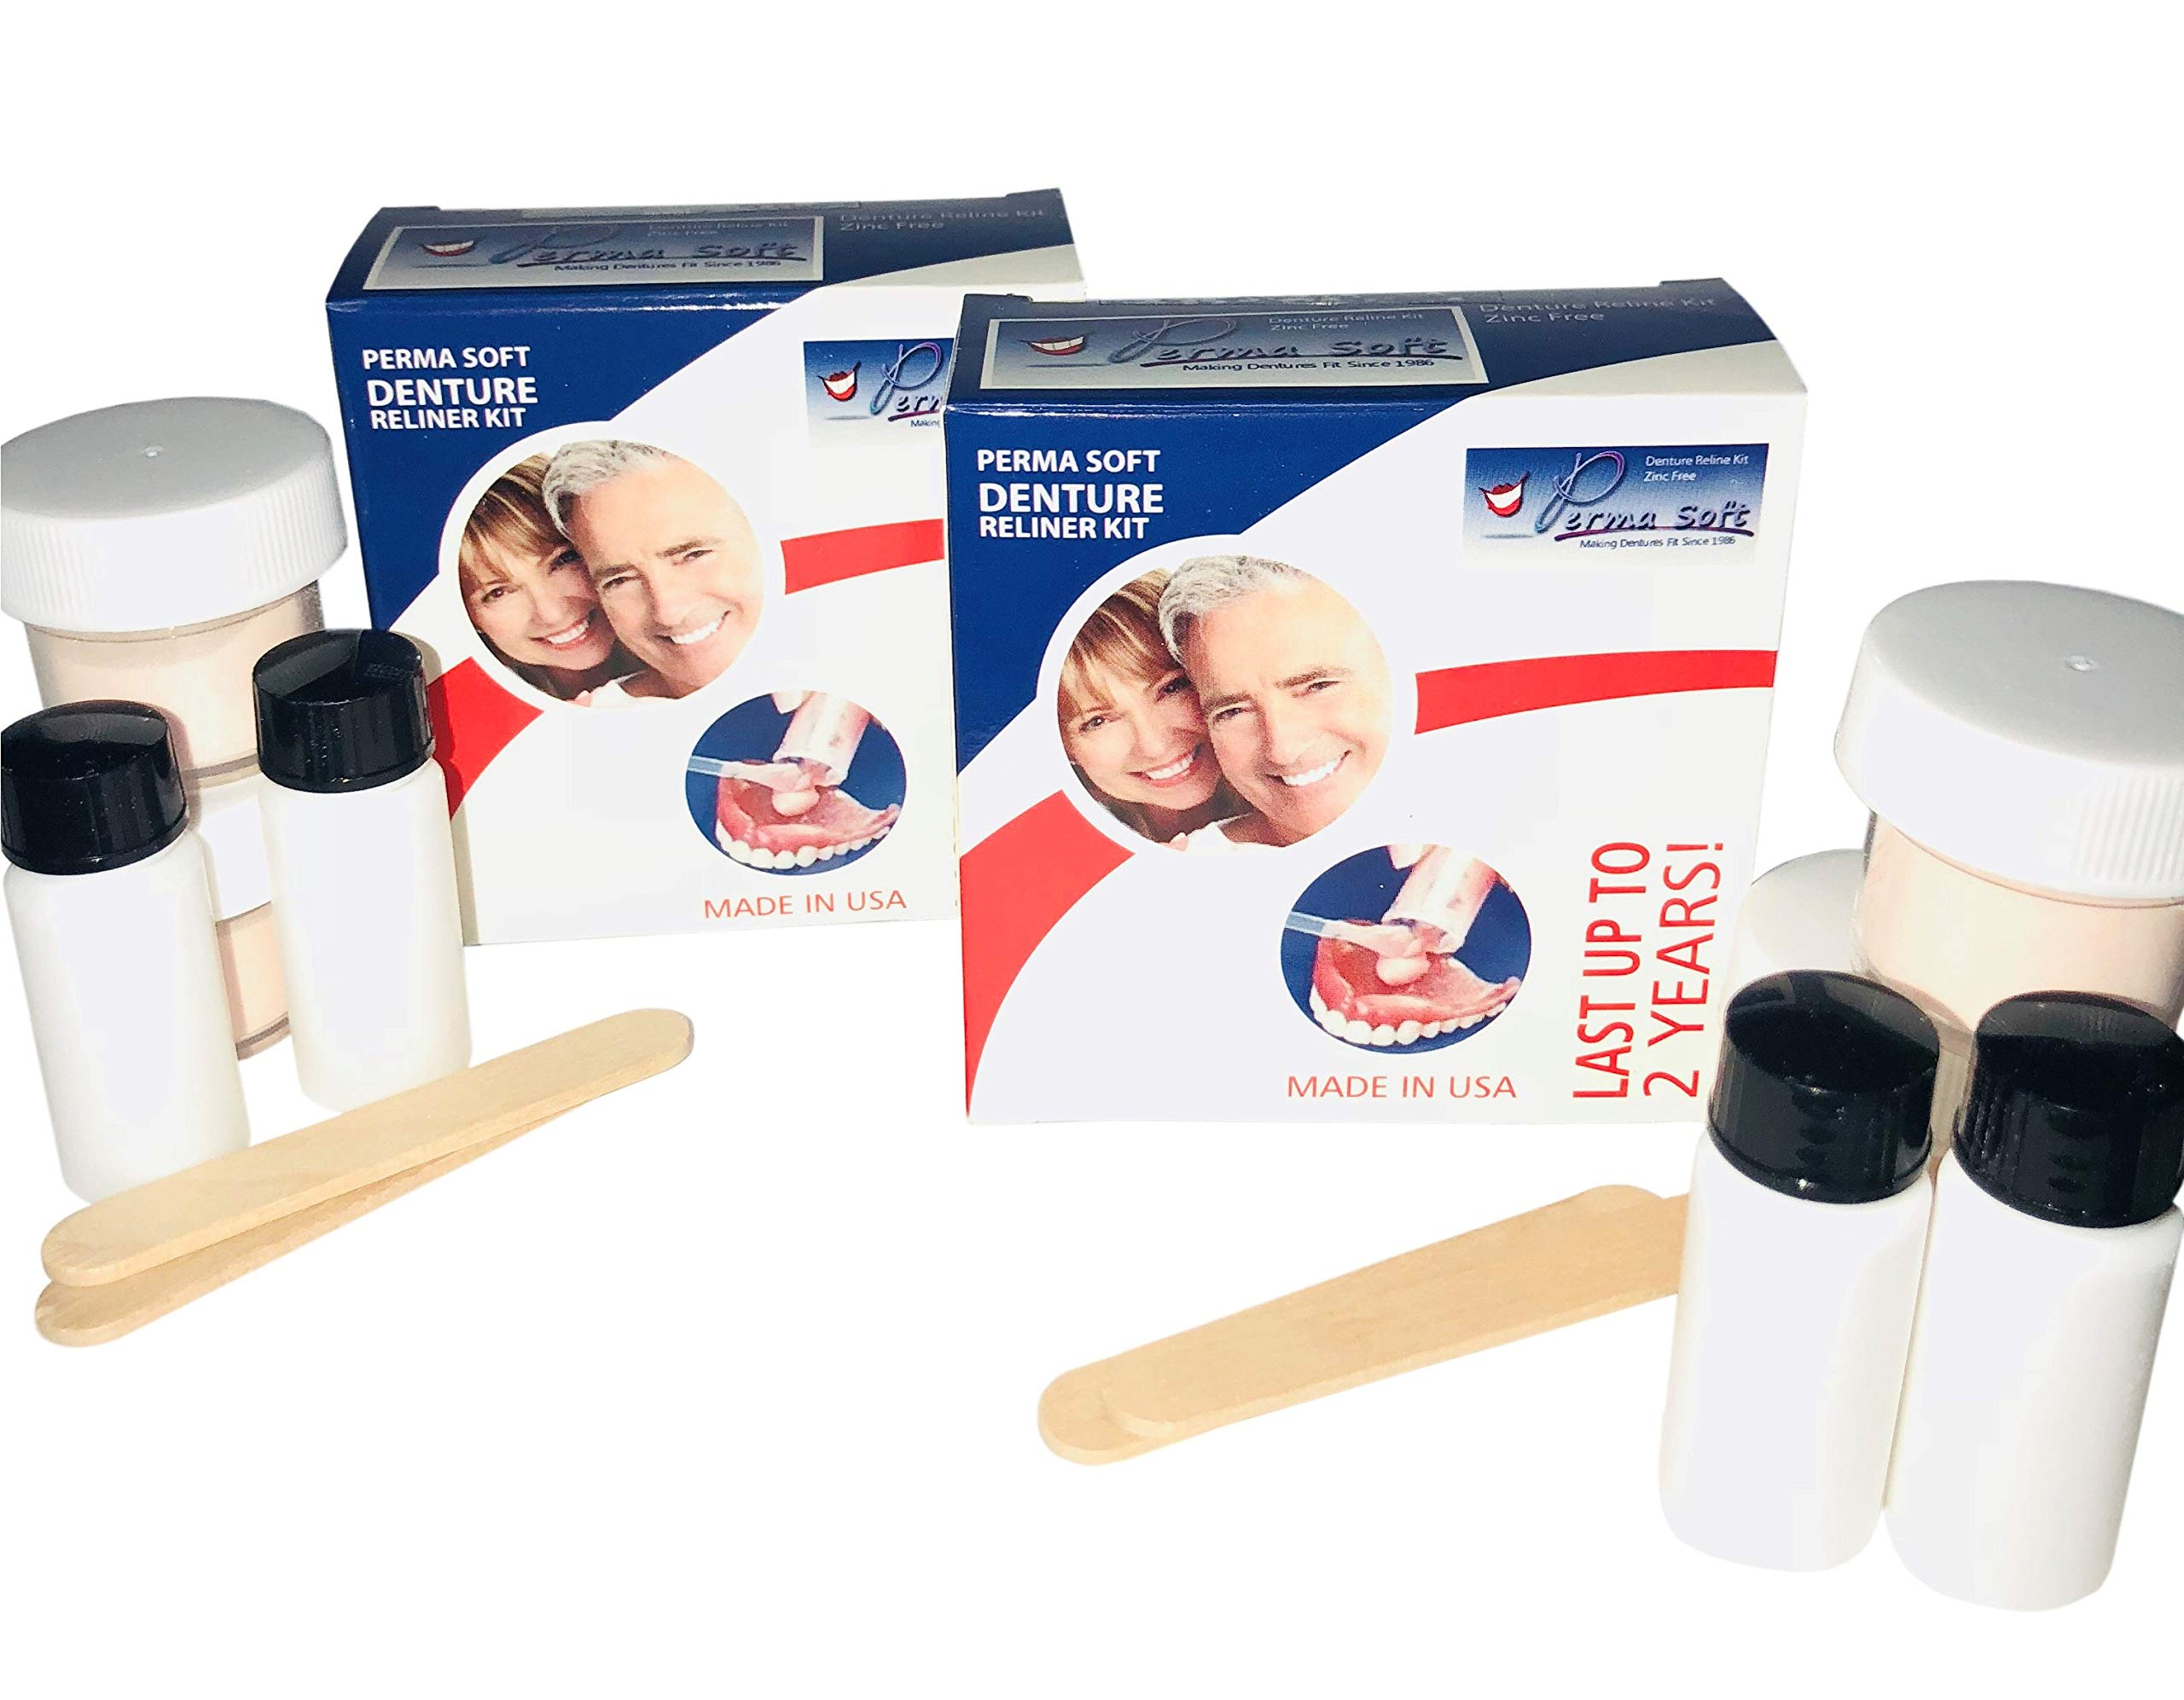 Perma Soft Denture Reline Kit- 2 Boxes (relines 4 dentures)